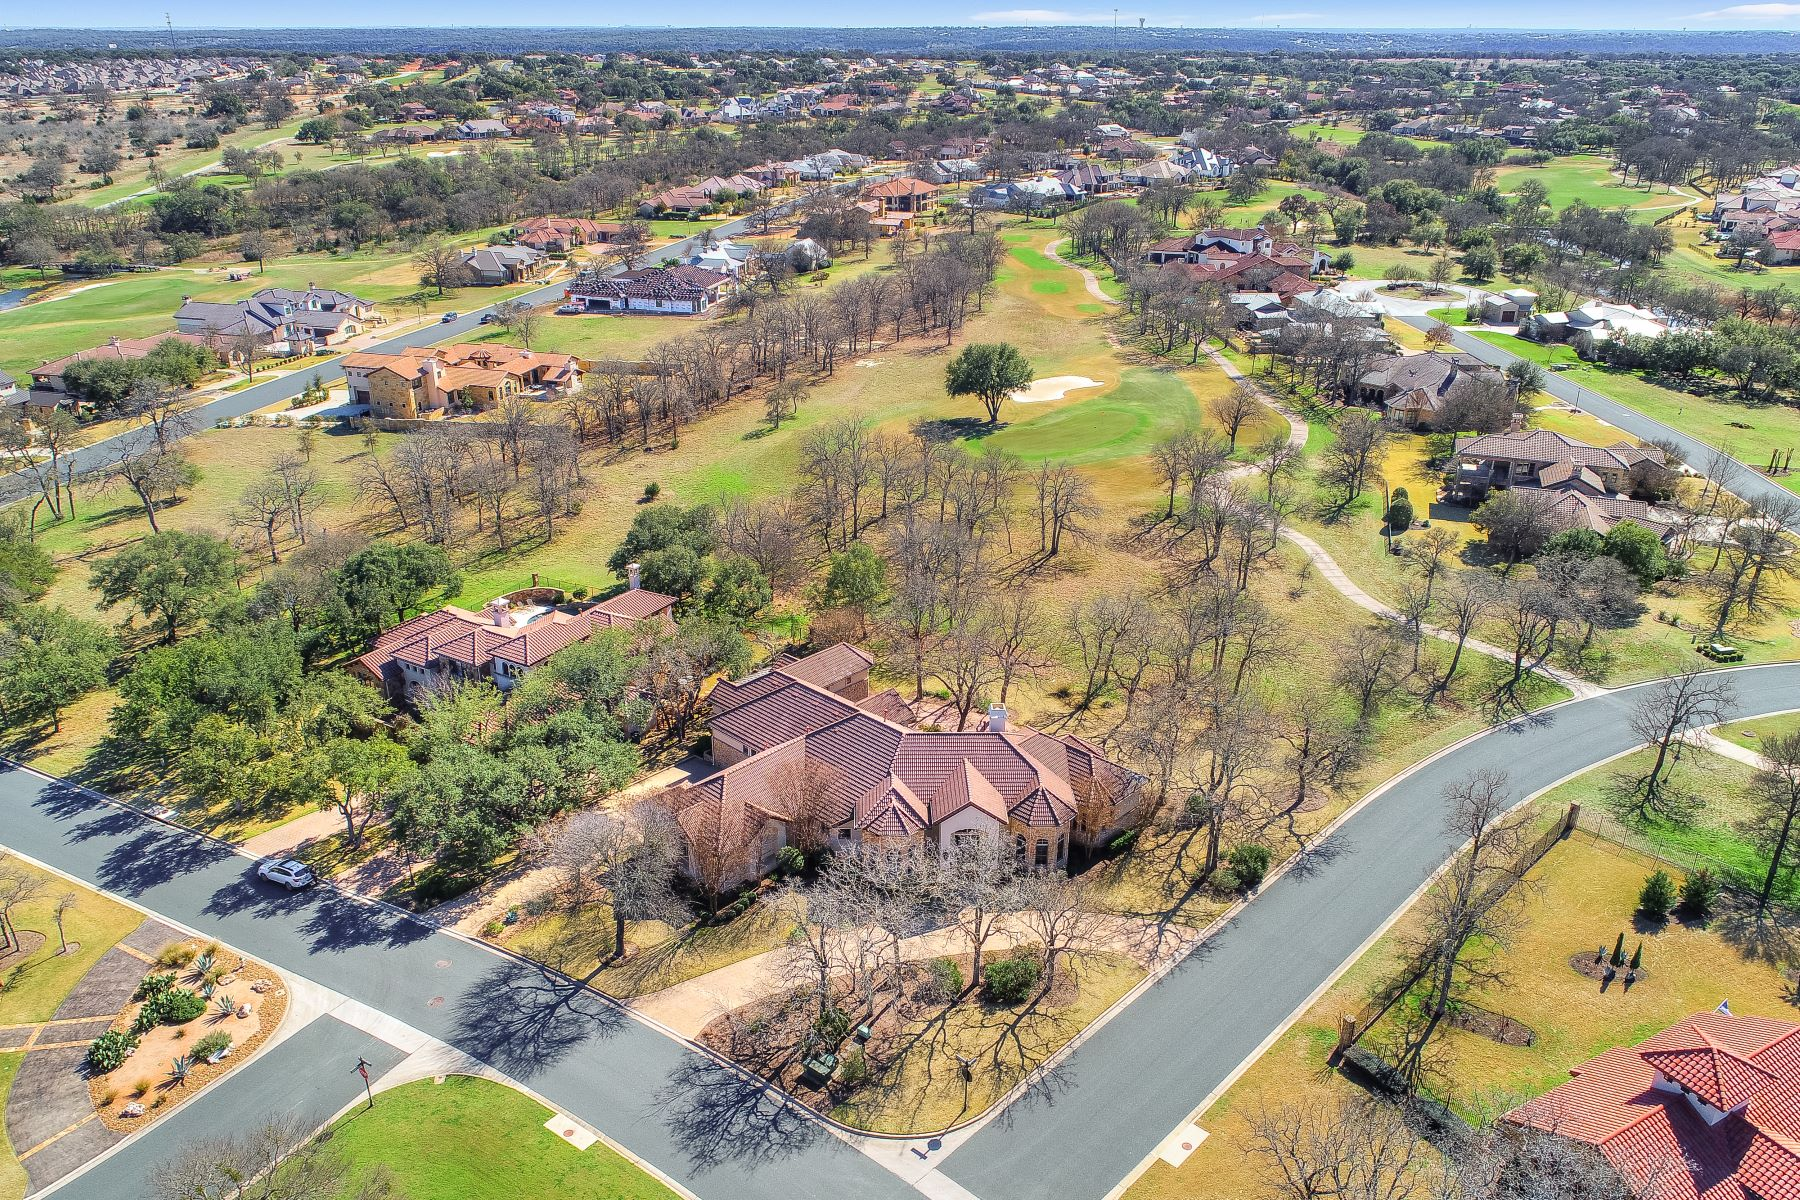 Single Family Homes for Sale at 105 Flint Ridge Trail, Georgetown, TX 78628 105 Flint Ridge Trail Georgetown, Texas 78628 United States